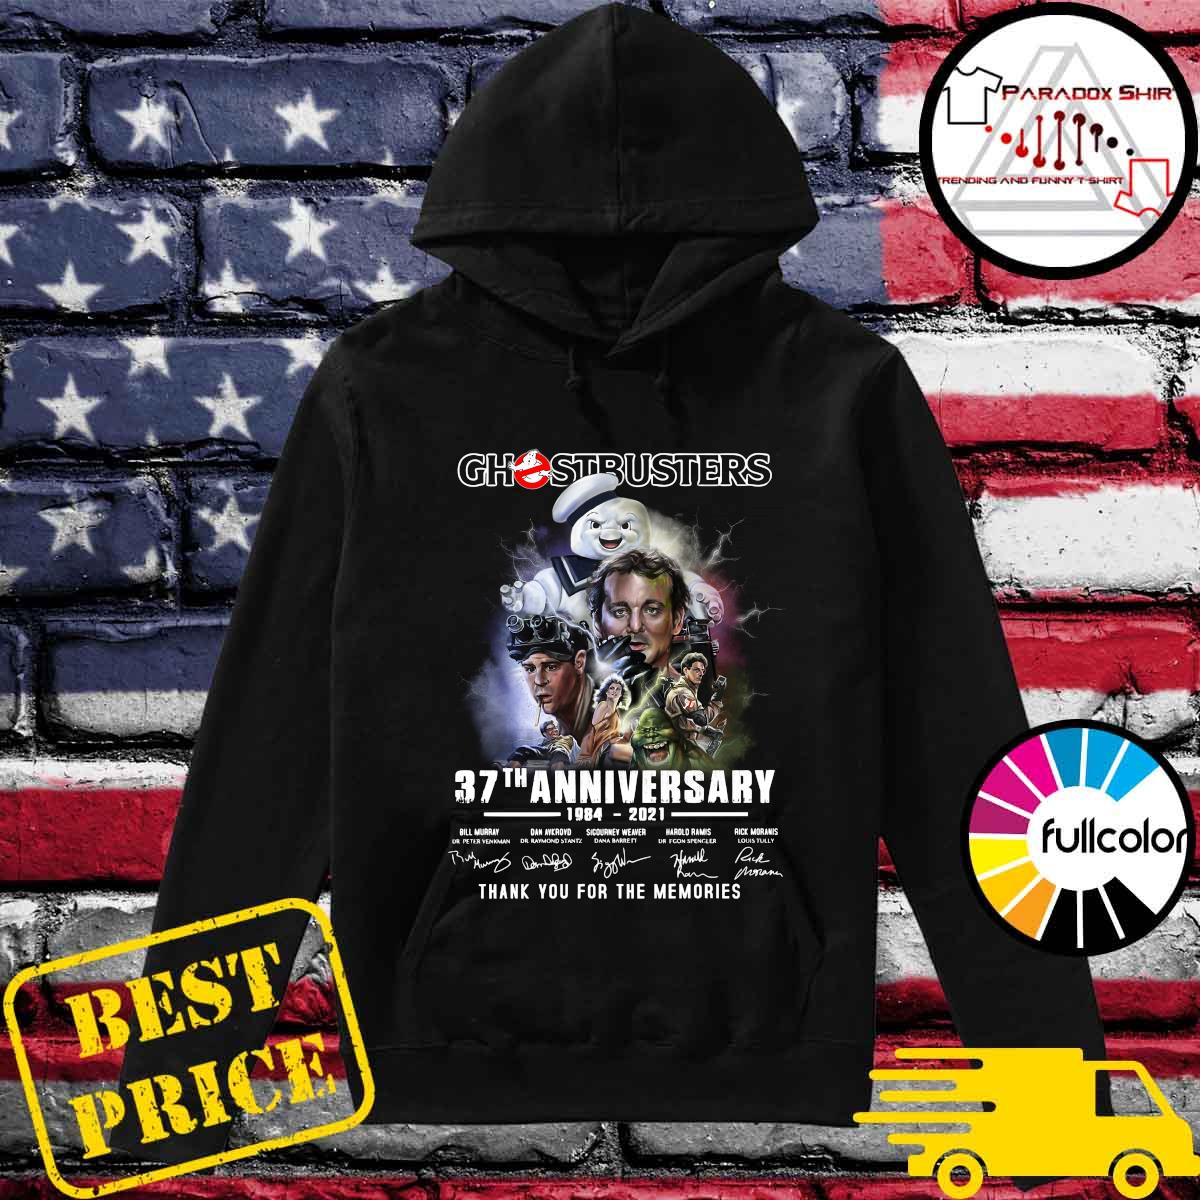 Ghostbusters 37th Anniversary 1984 2021 Thank You For The Memories Signatures Shirt Hoodie